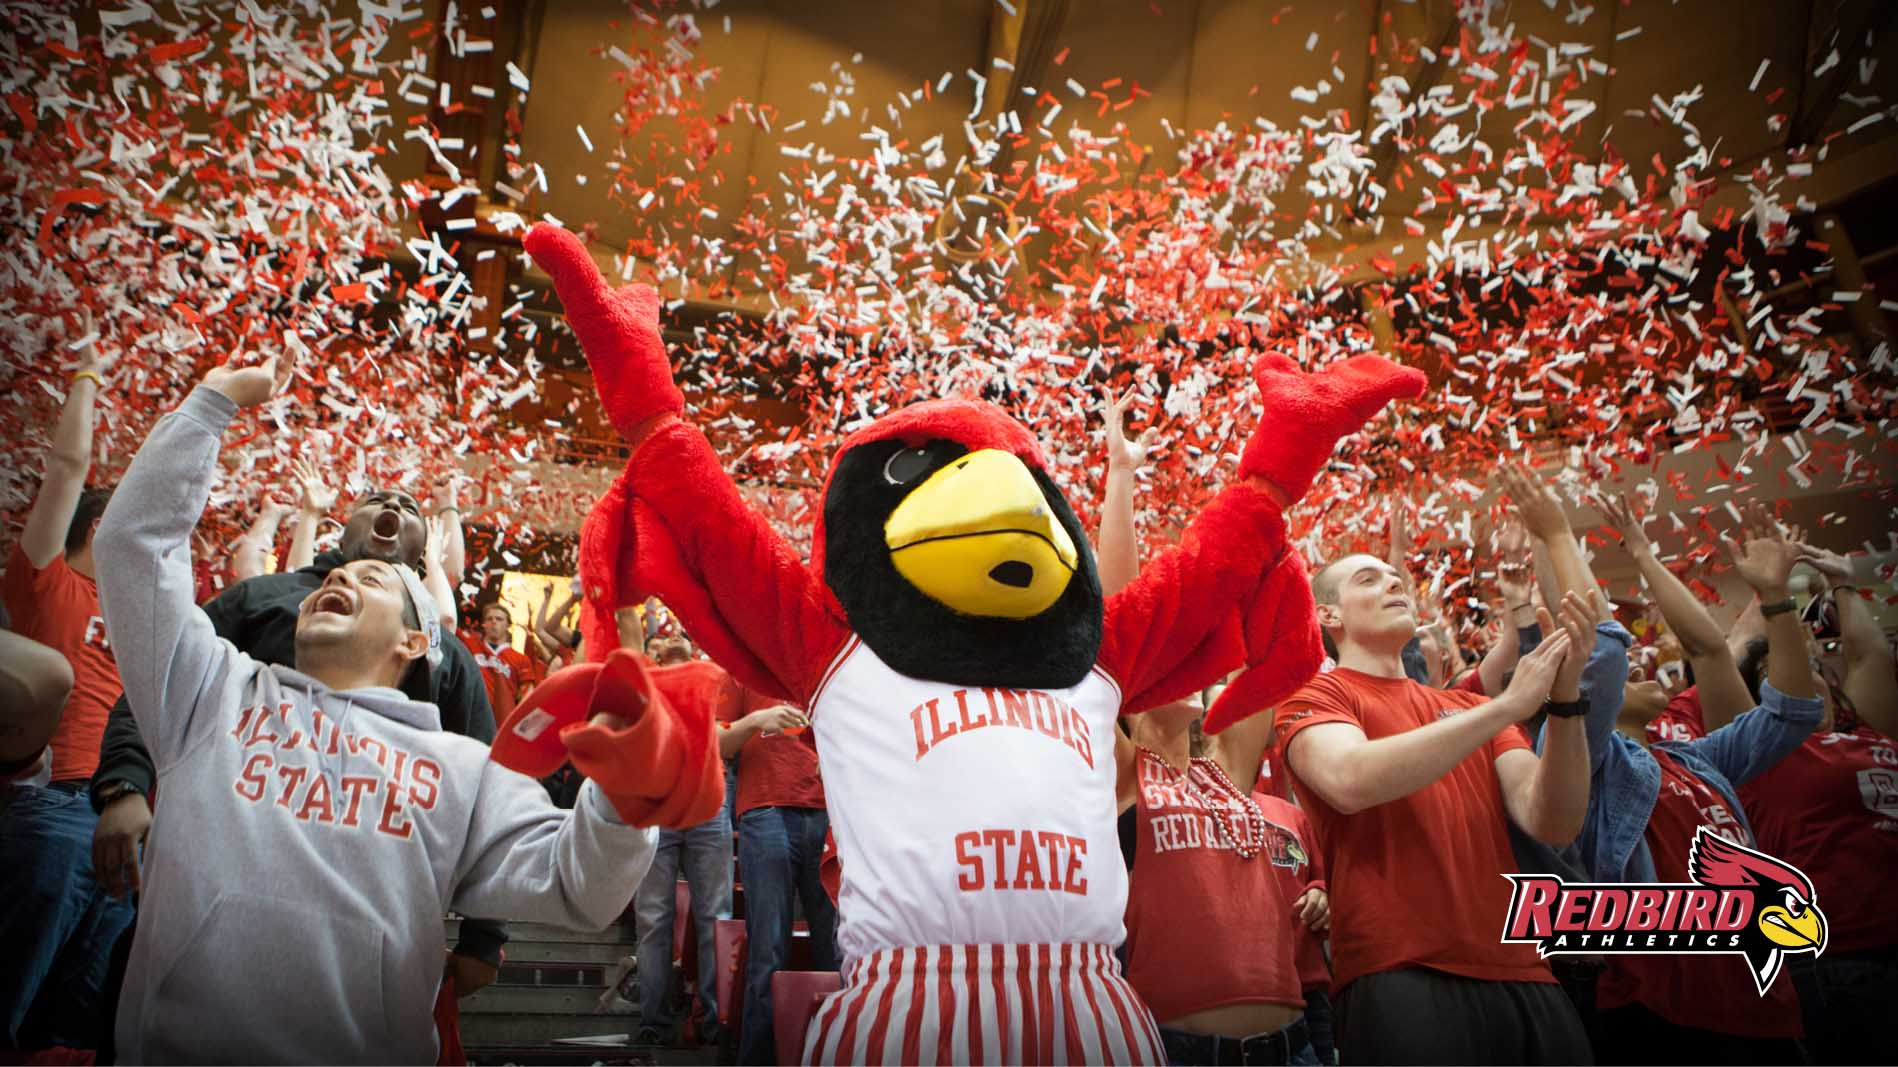 Illinois State Wallpapers Alumni   Illinois State 1898x1067